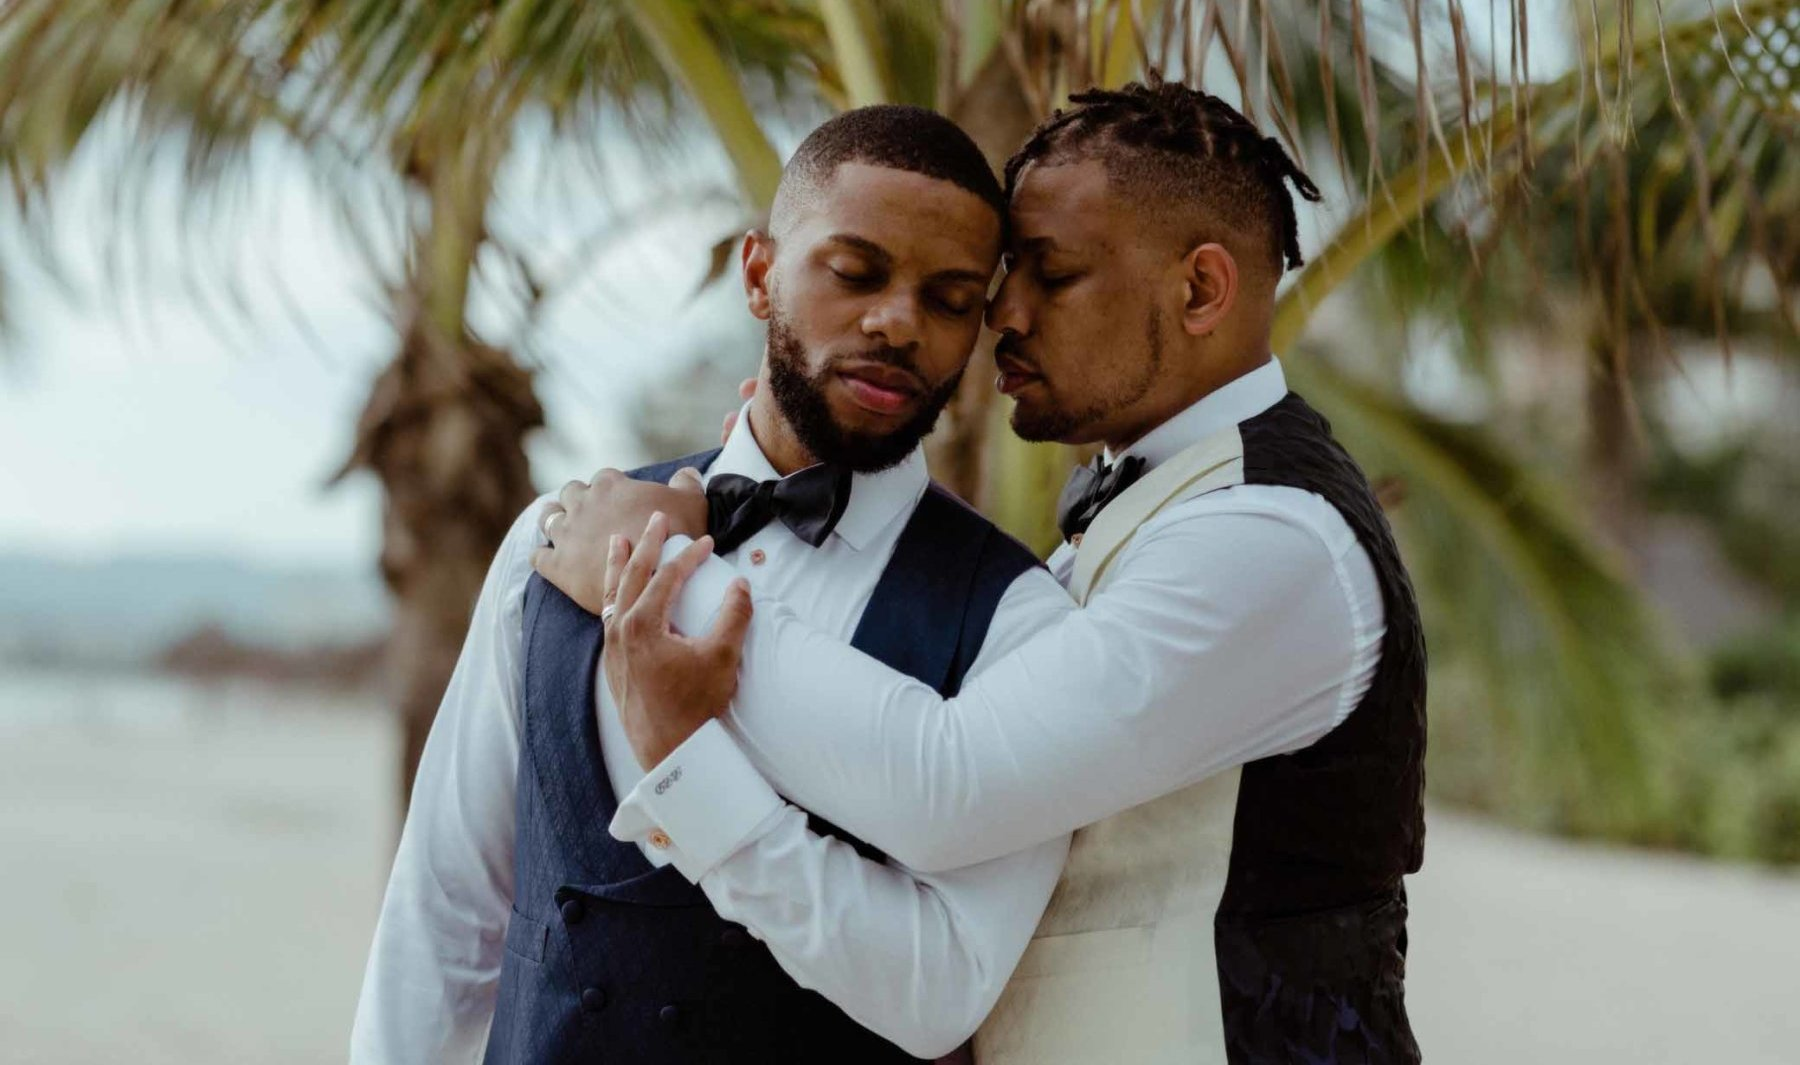 Silk-and-Thorn-Puerto-Vallarta-Mexico-USA gay queer lgbtqia two grooms couple destination wedding marriage beach elopement Dancing With Them magazine